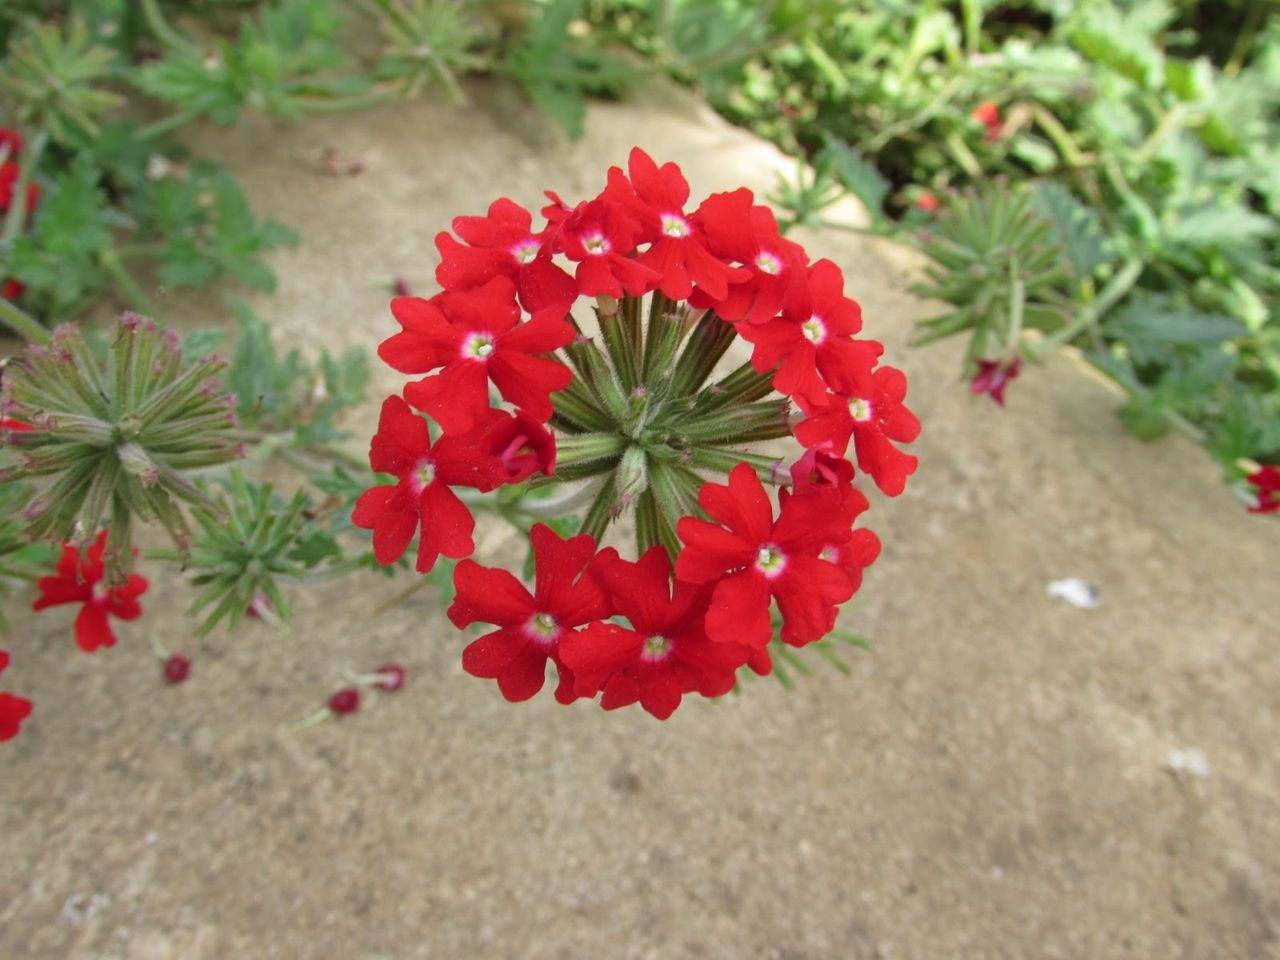 flower, nature, red, petal, beauty in nature, growth, flower head, plant, freshness, fragility, focus on foreground, high angle view, blooming, day, no people, outdoors, close-up, zinnia